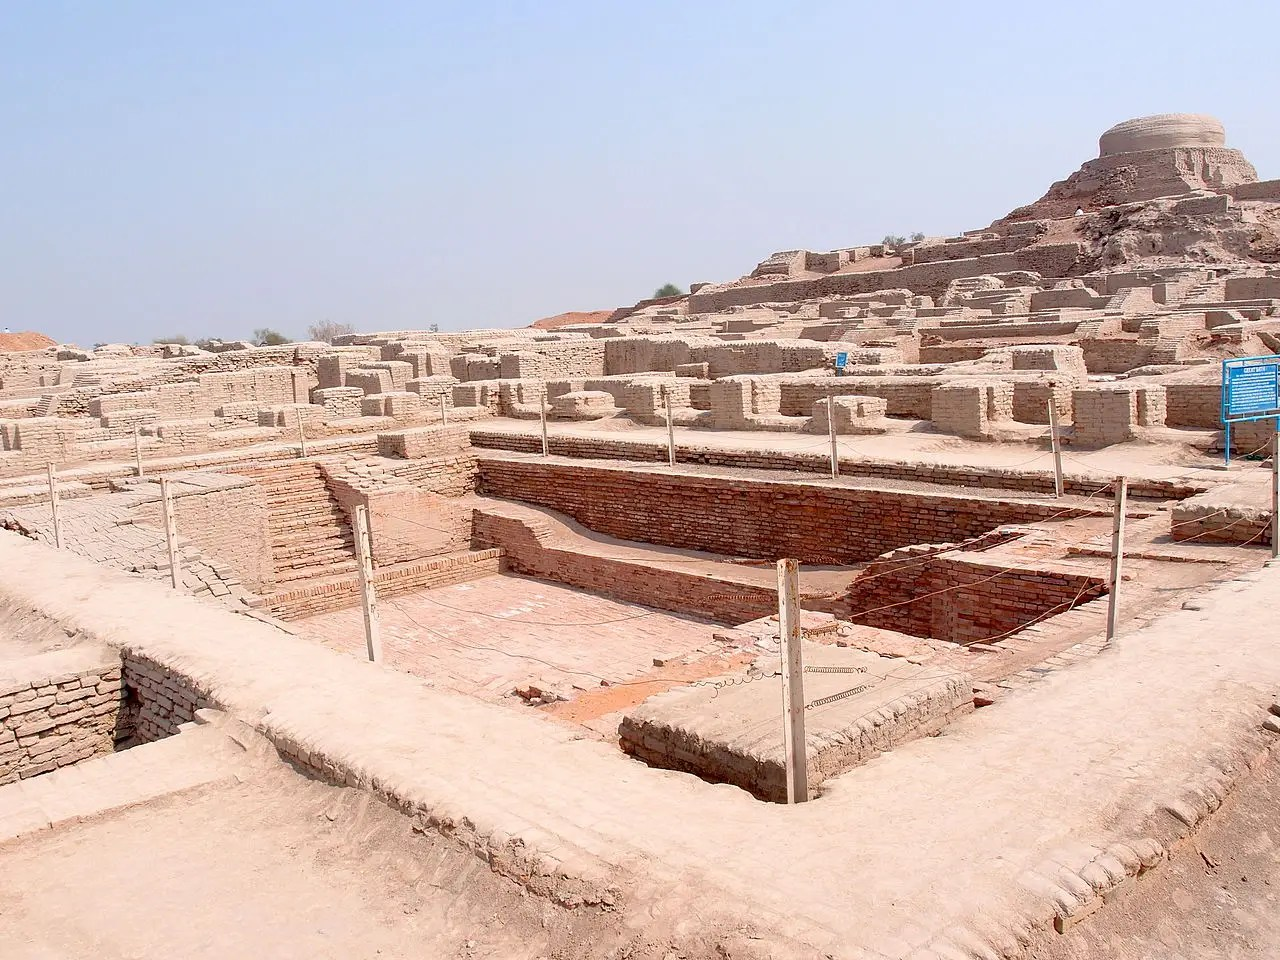 Decoding This Script Could Crack The Mystery Of The Indus